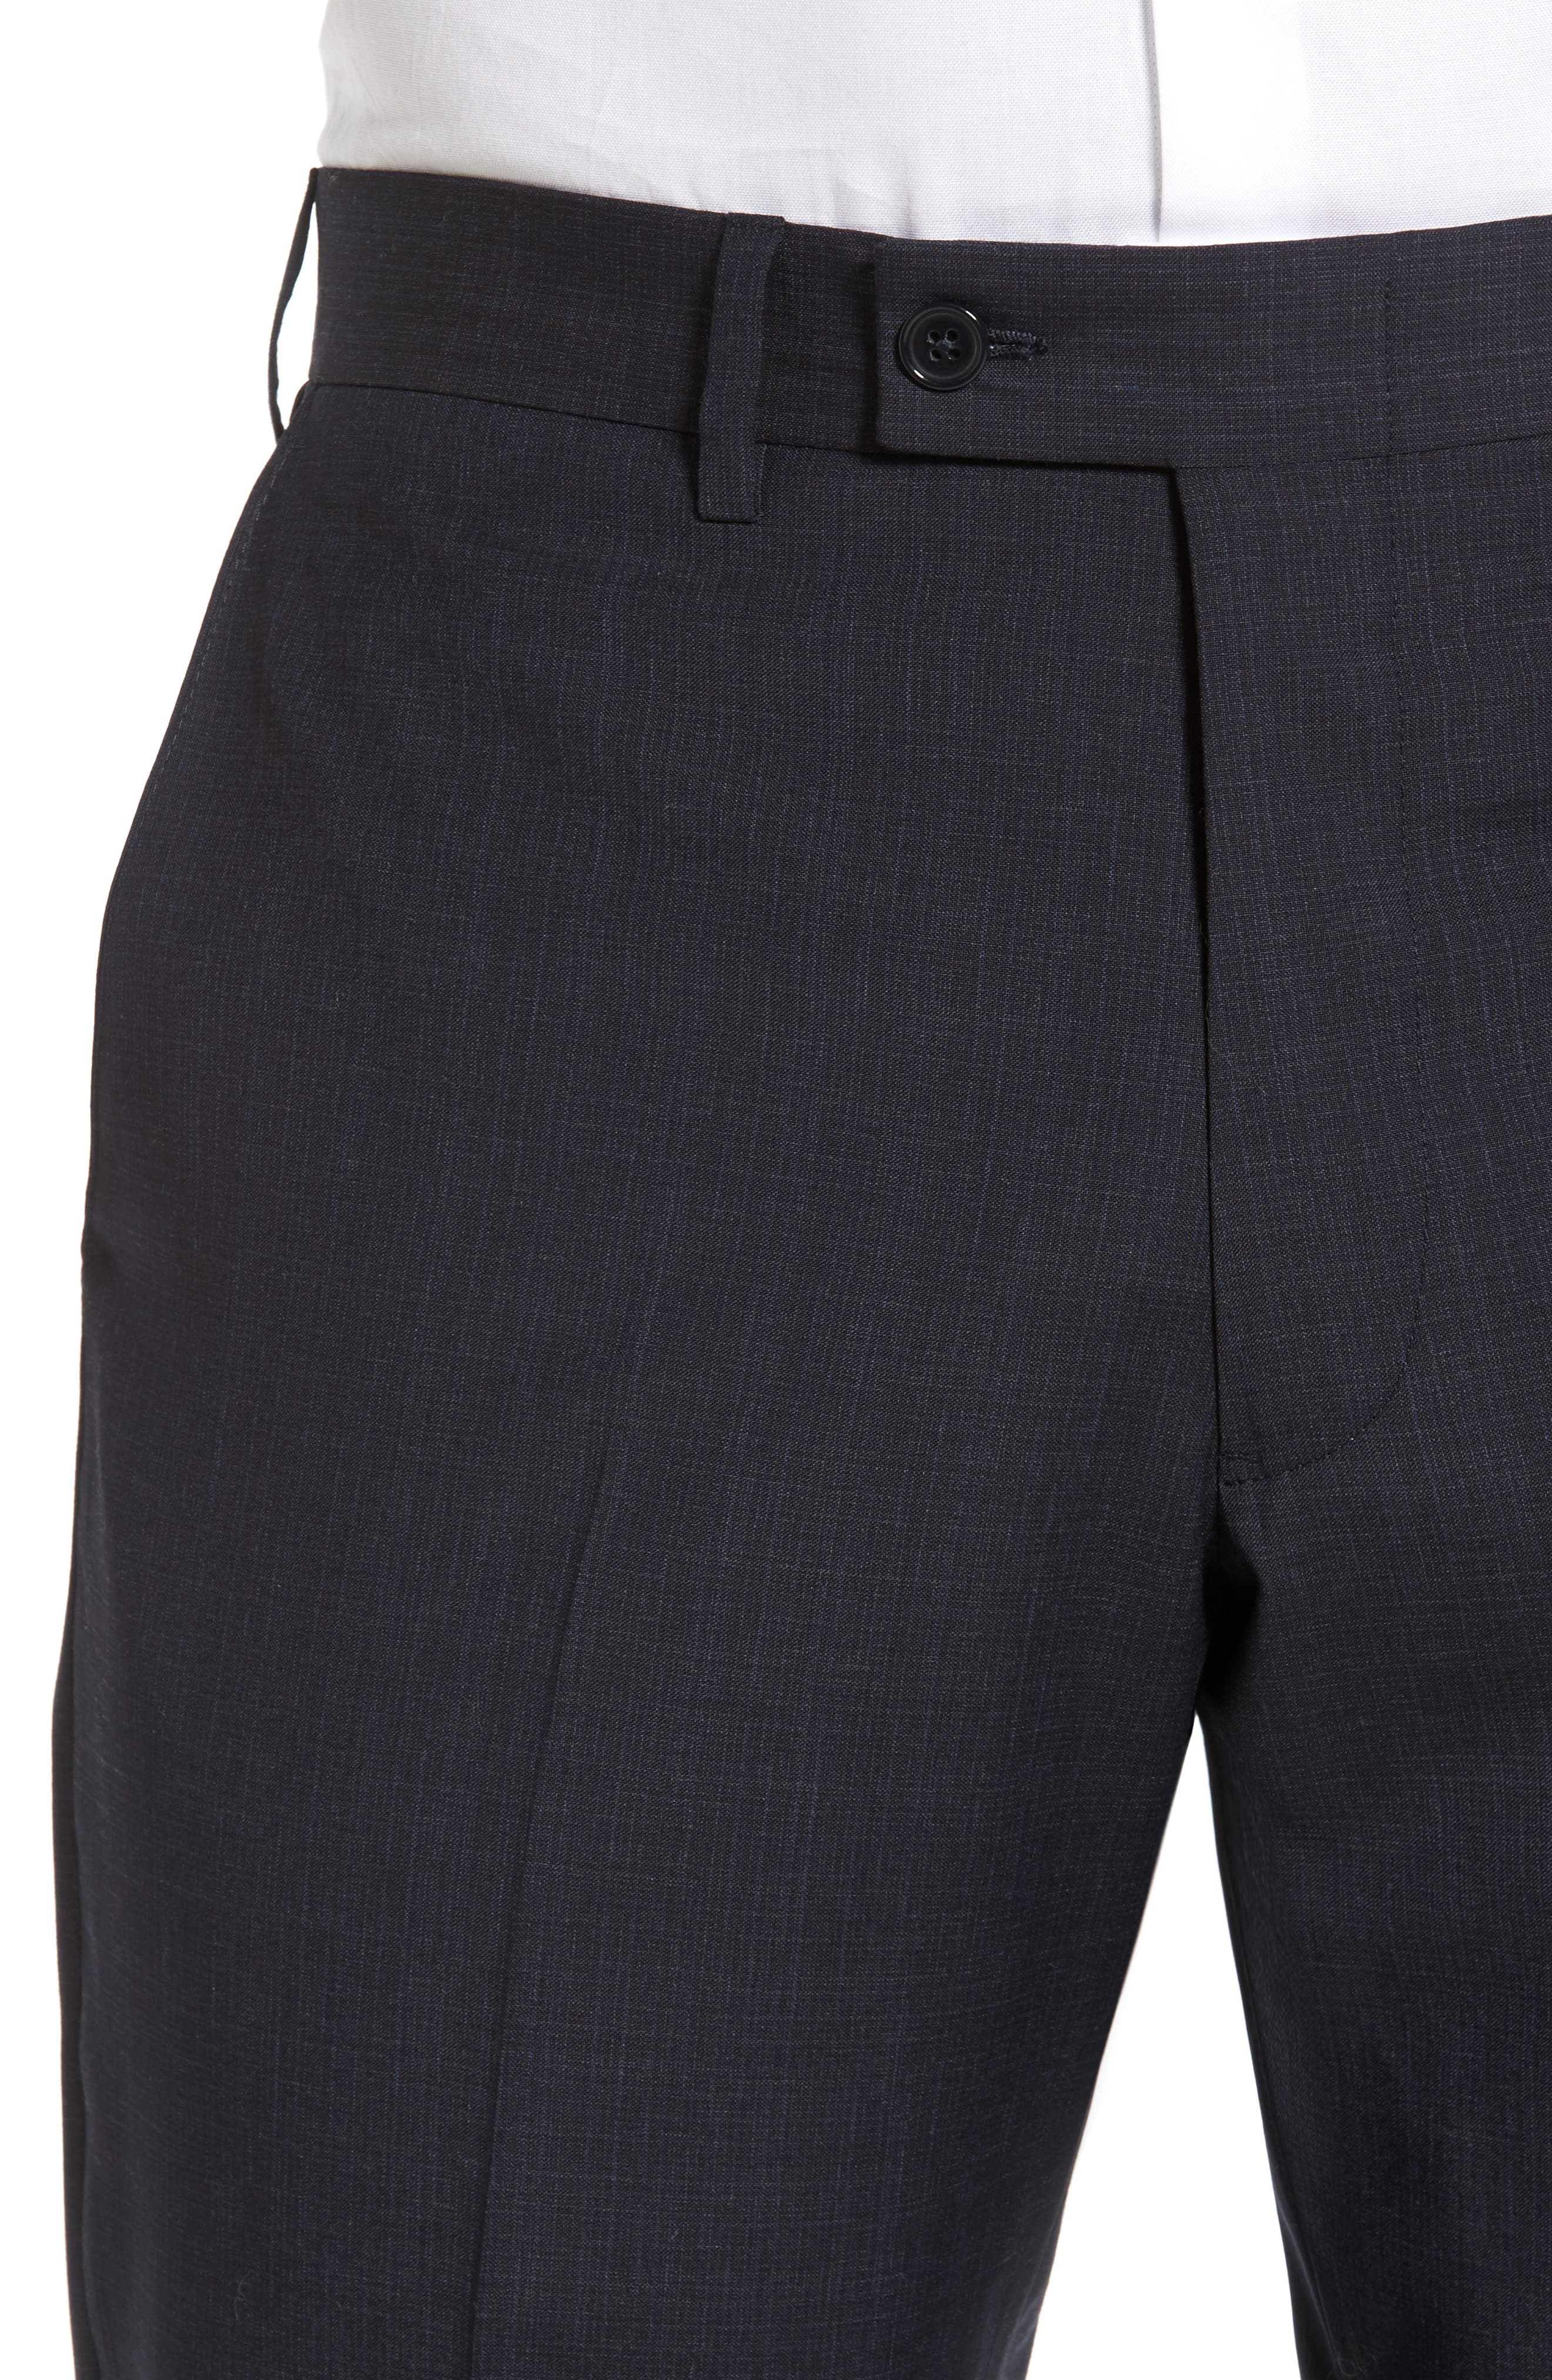 Flat Front Solid Wool Trousers,                             Alternate thumbnail 4, color,                             Navy